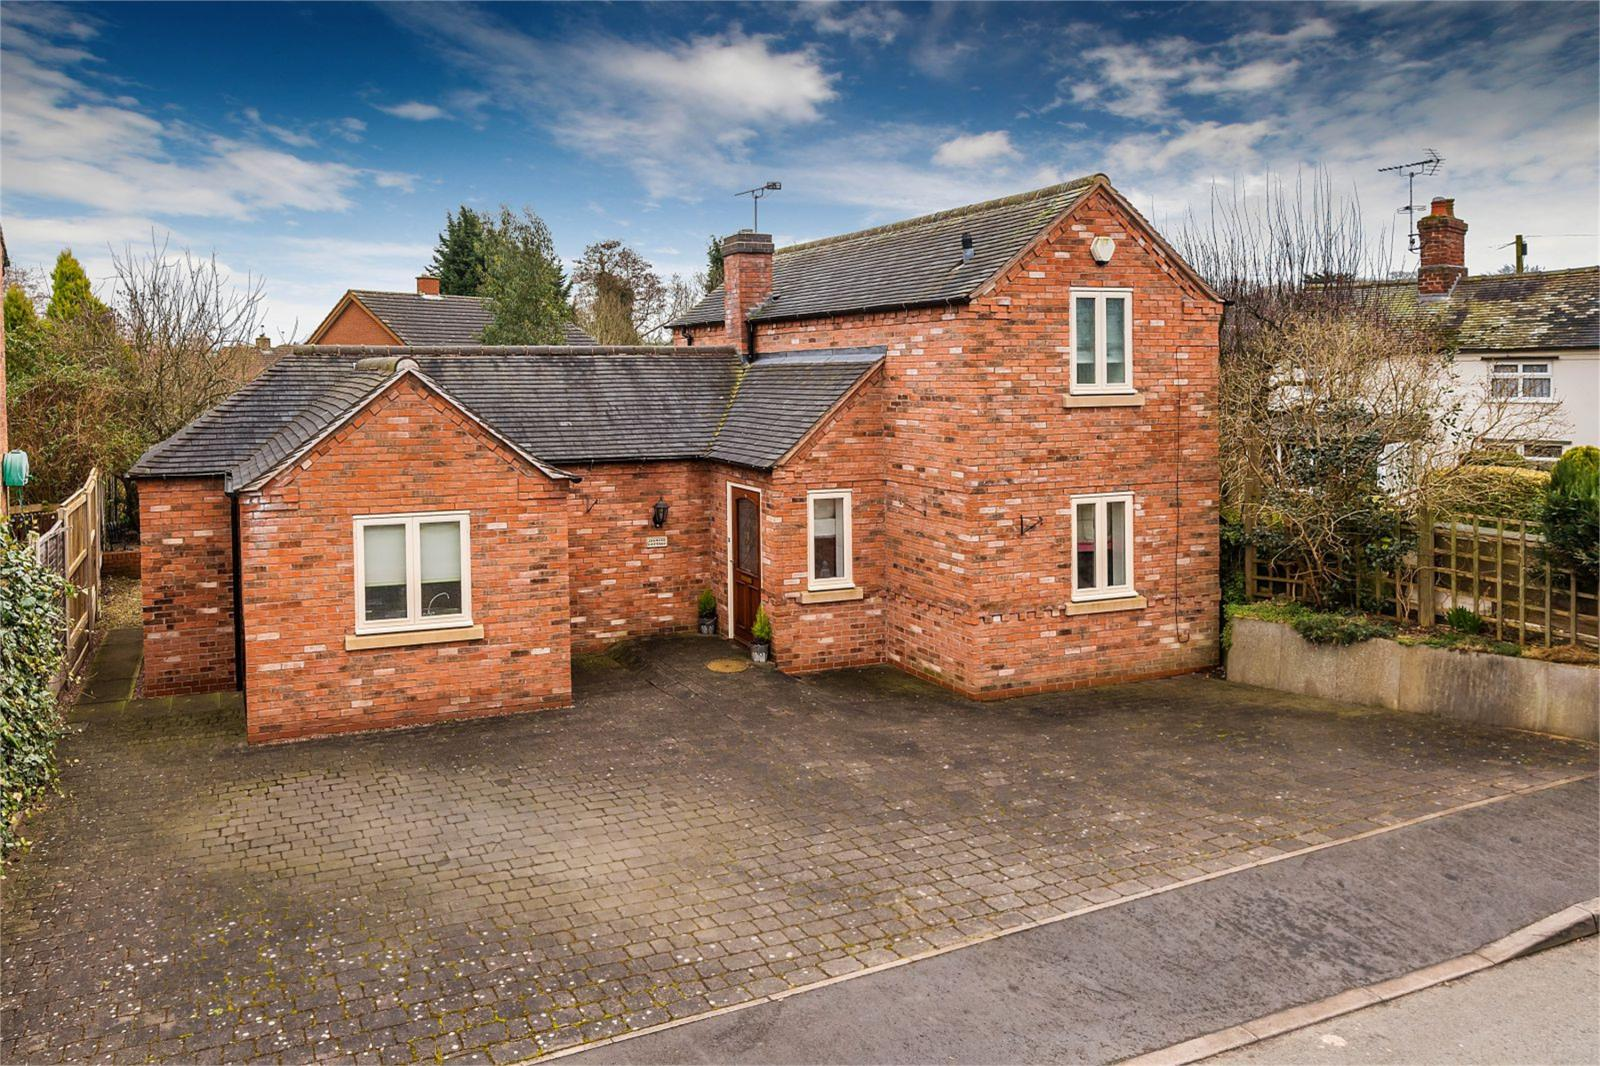 3 Bedrooms Detached House for sale in Jasmine Cottage, Cross Street, Gnosall, ST20